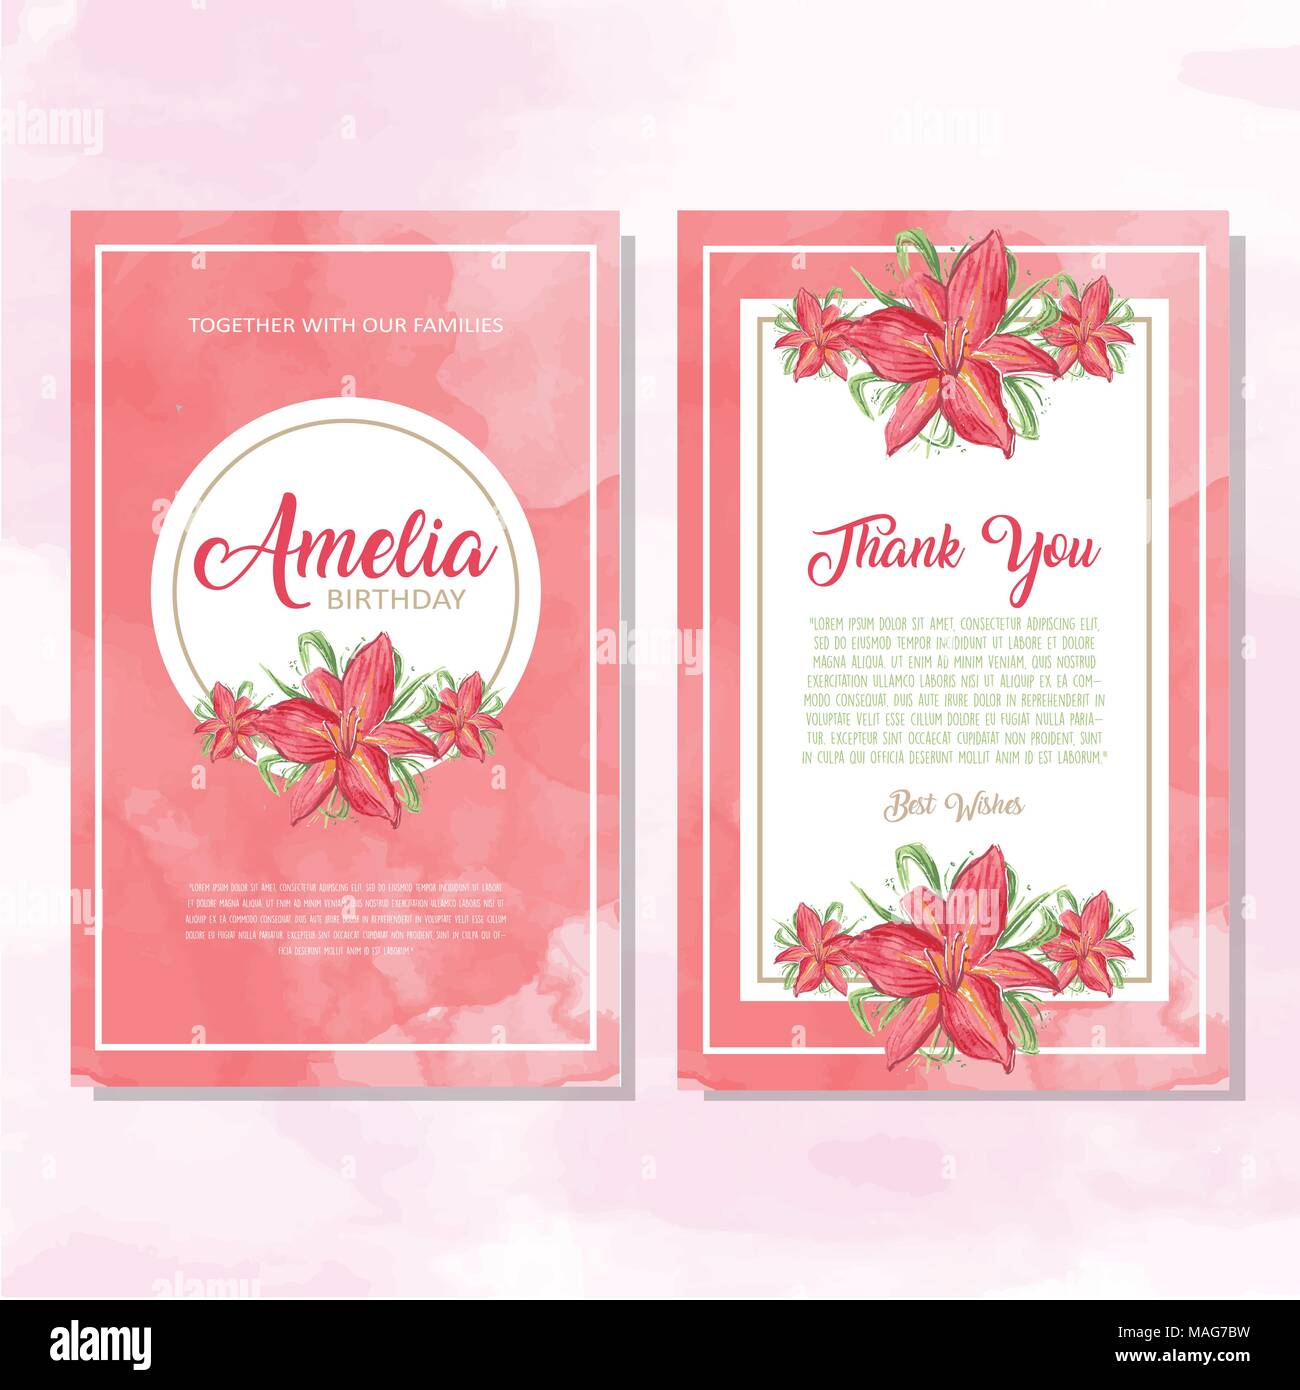 colorful invitation greetings card with ornaments and flowers stock